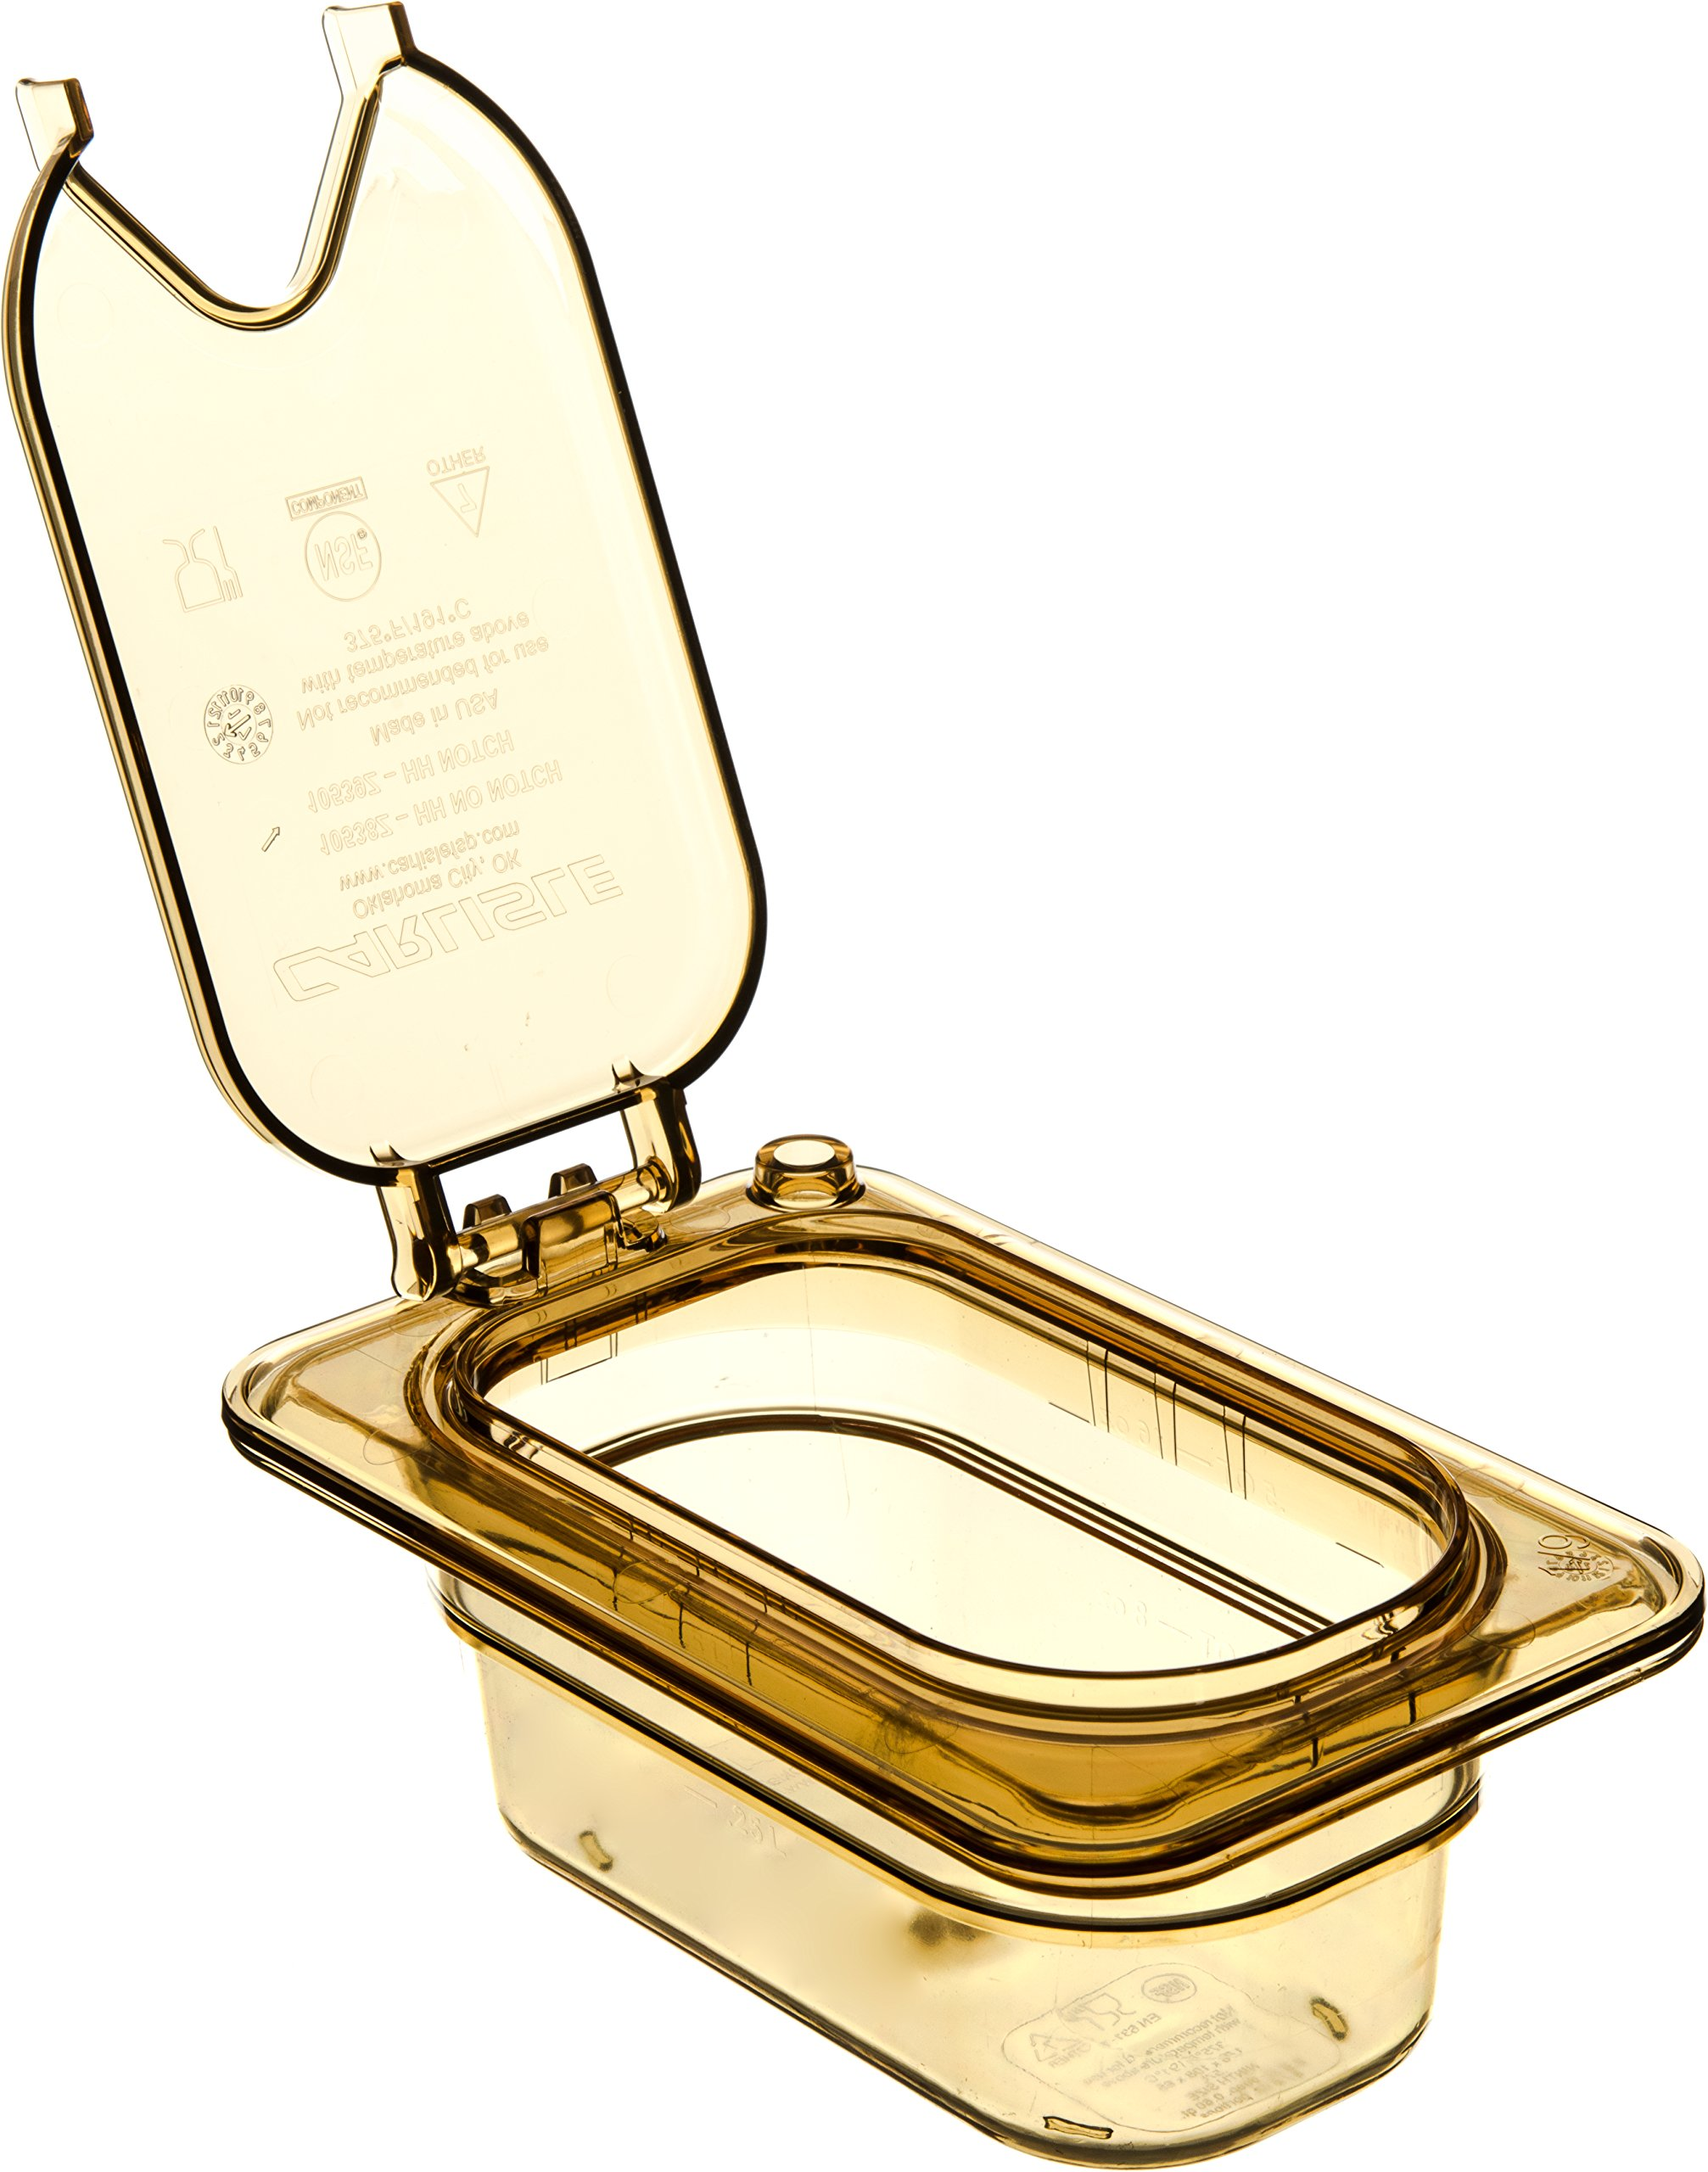 Carlisle 10539Z13 StorPlus EZ Access Hinged High Heat Lid with Handle and Notch, Universal Ninth Size, Amber (Pack of 6) by Carlisle (Image #4)